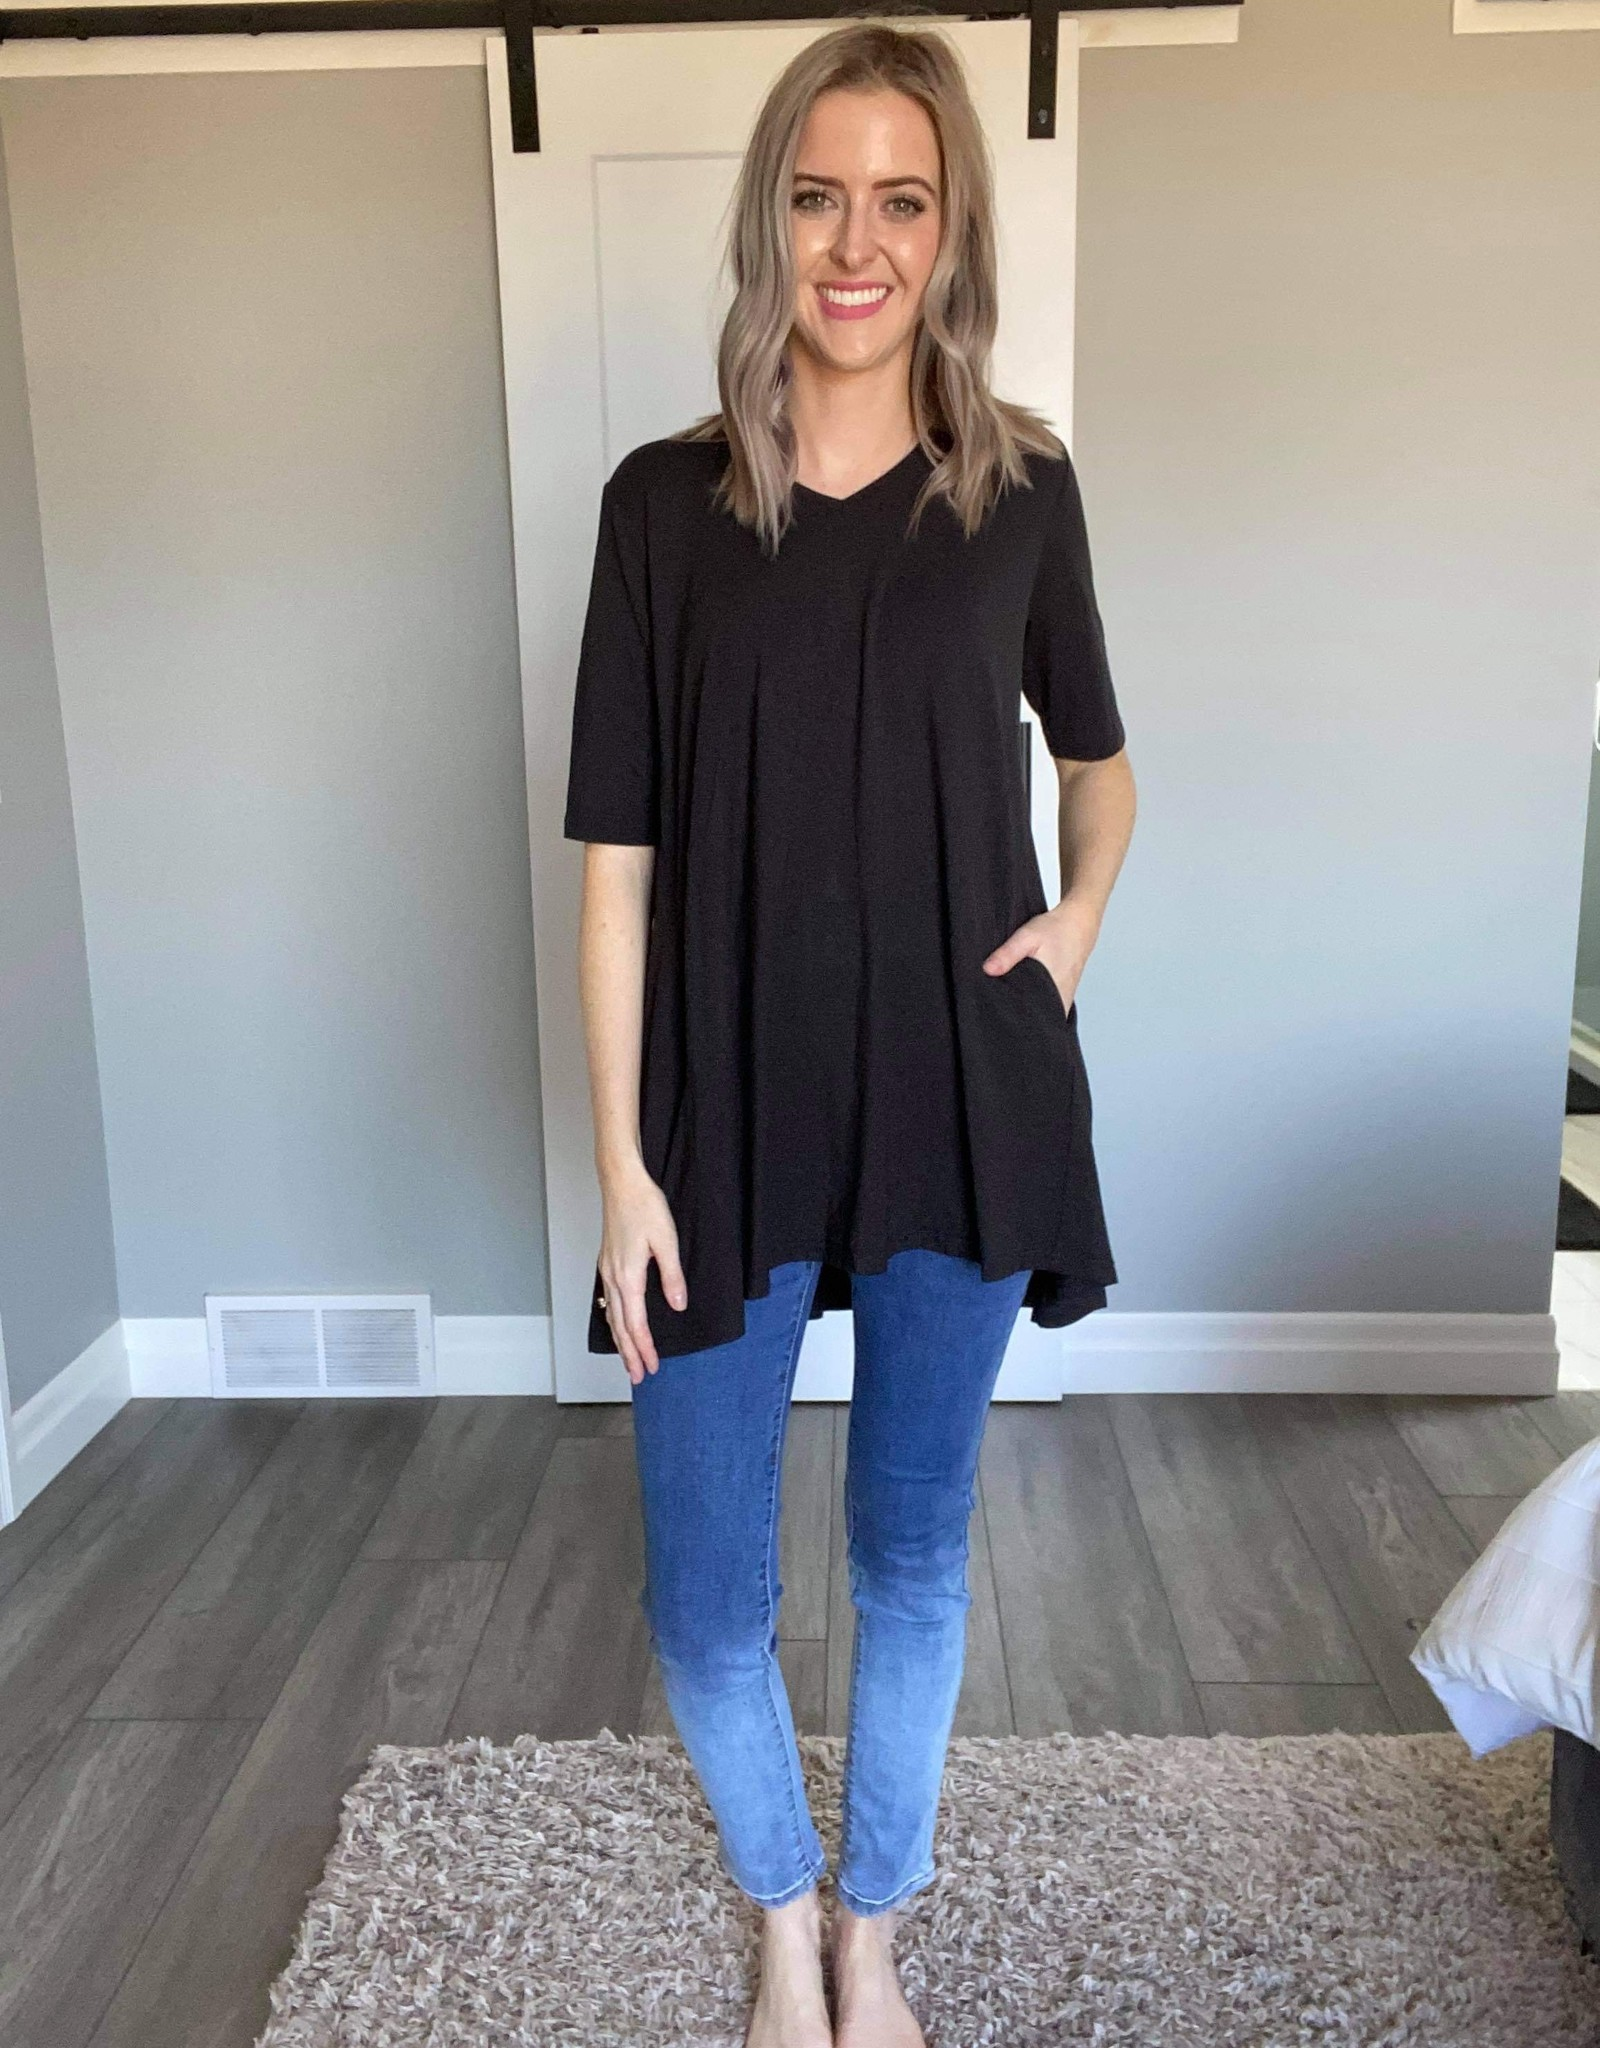 Bamboo Tunic with Pockets